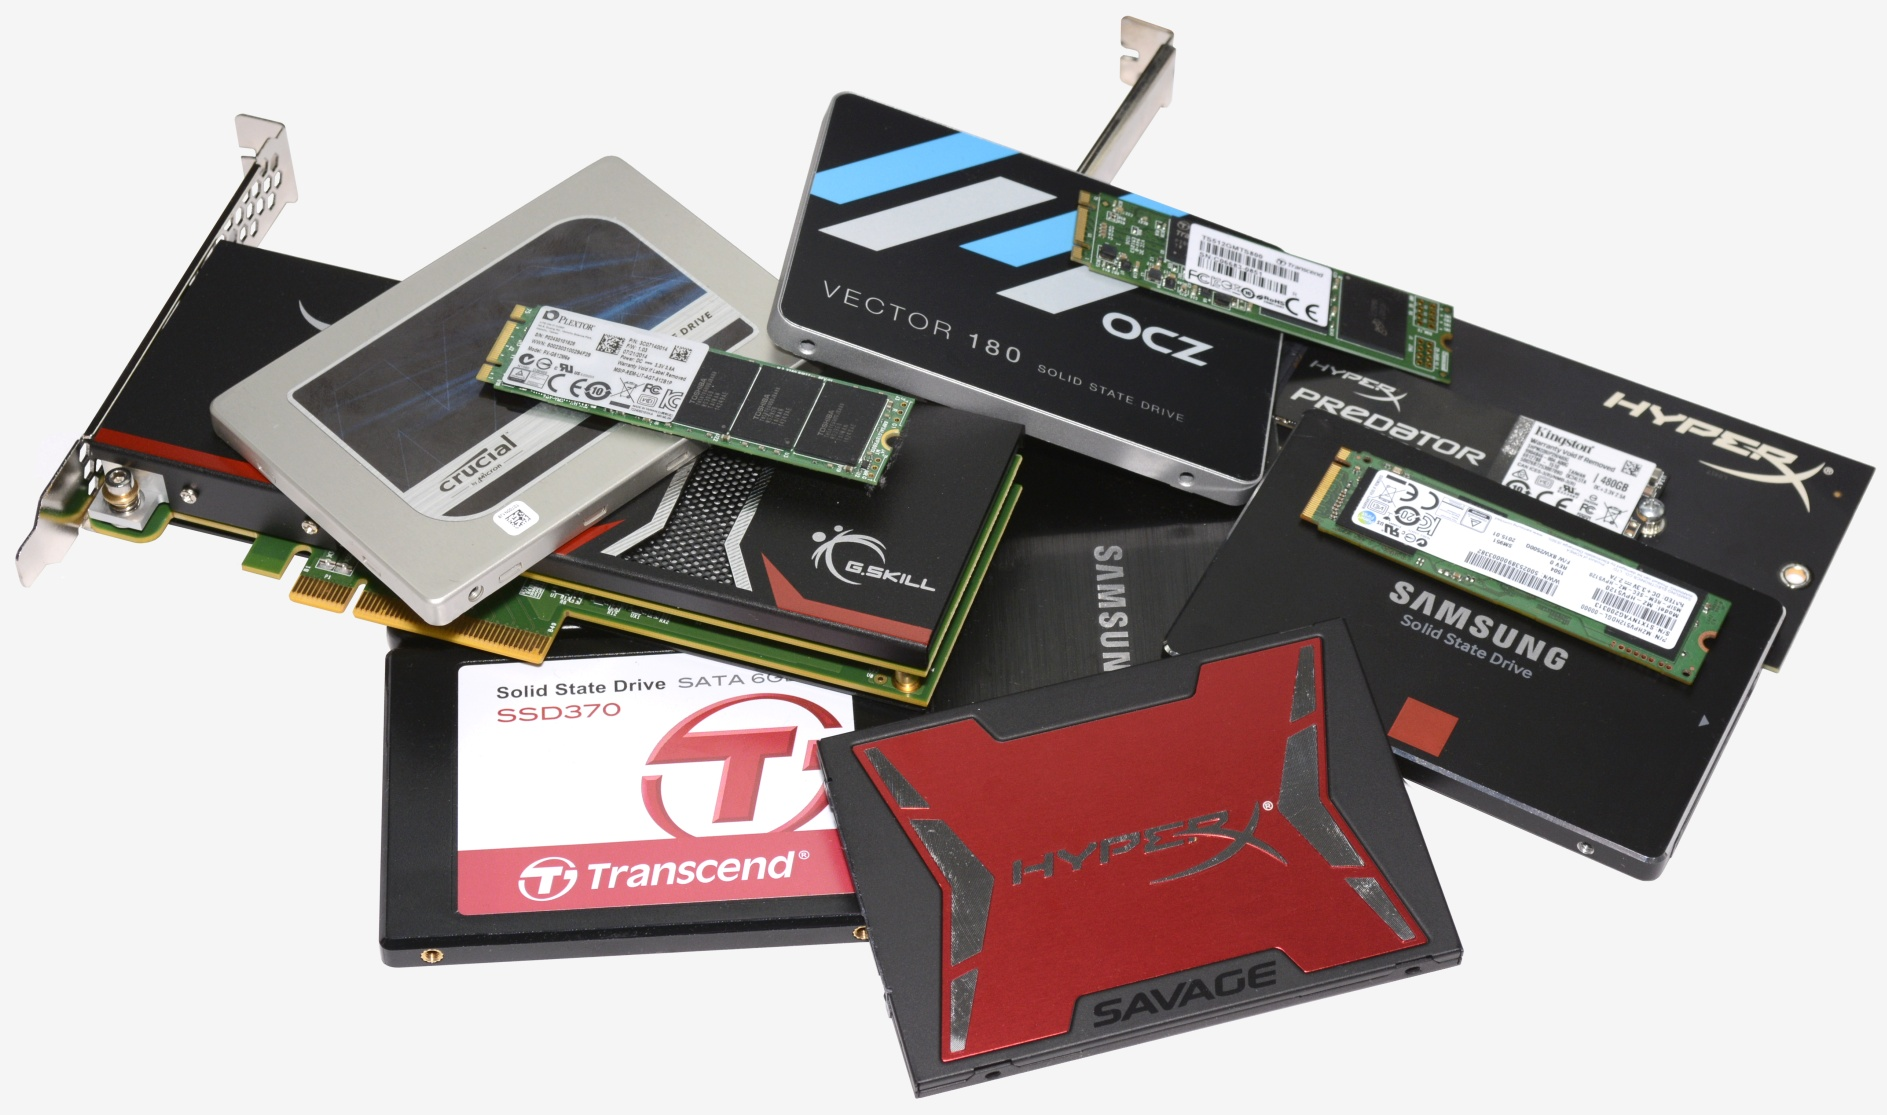 How to securely dispose of your solid state drive according to Backblaze